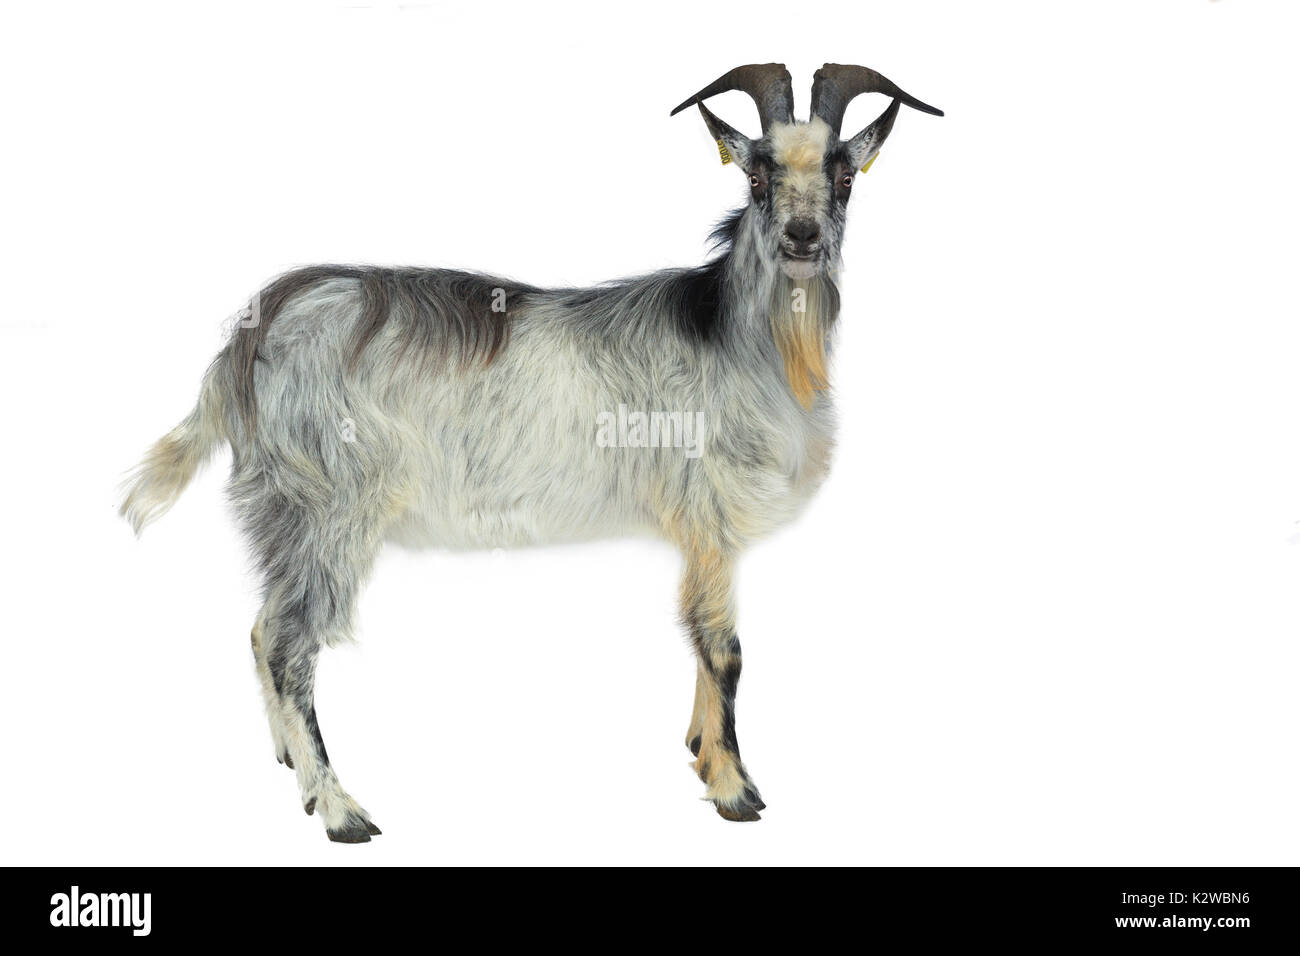 French breed, goat from France: Lorraine goat, can be outlined, here a billy goat. - Stock Image